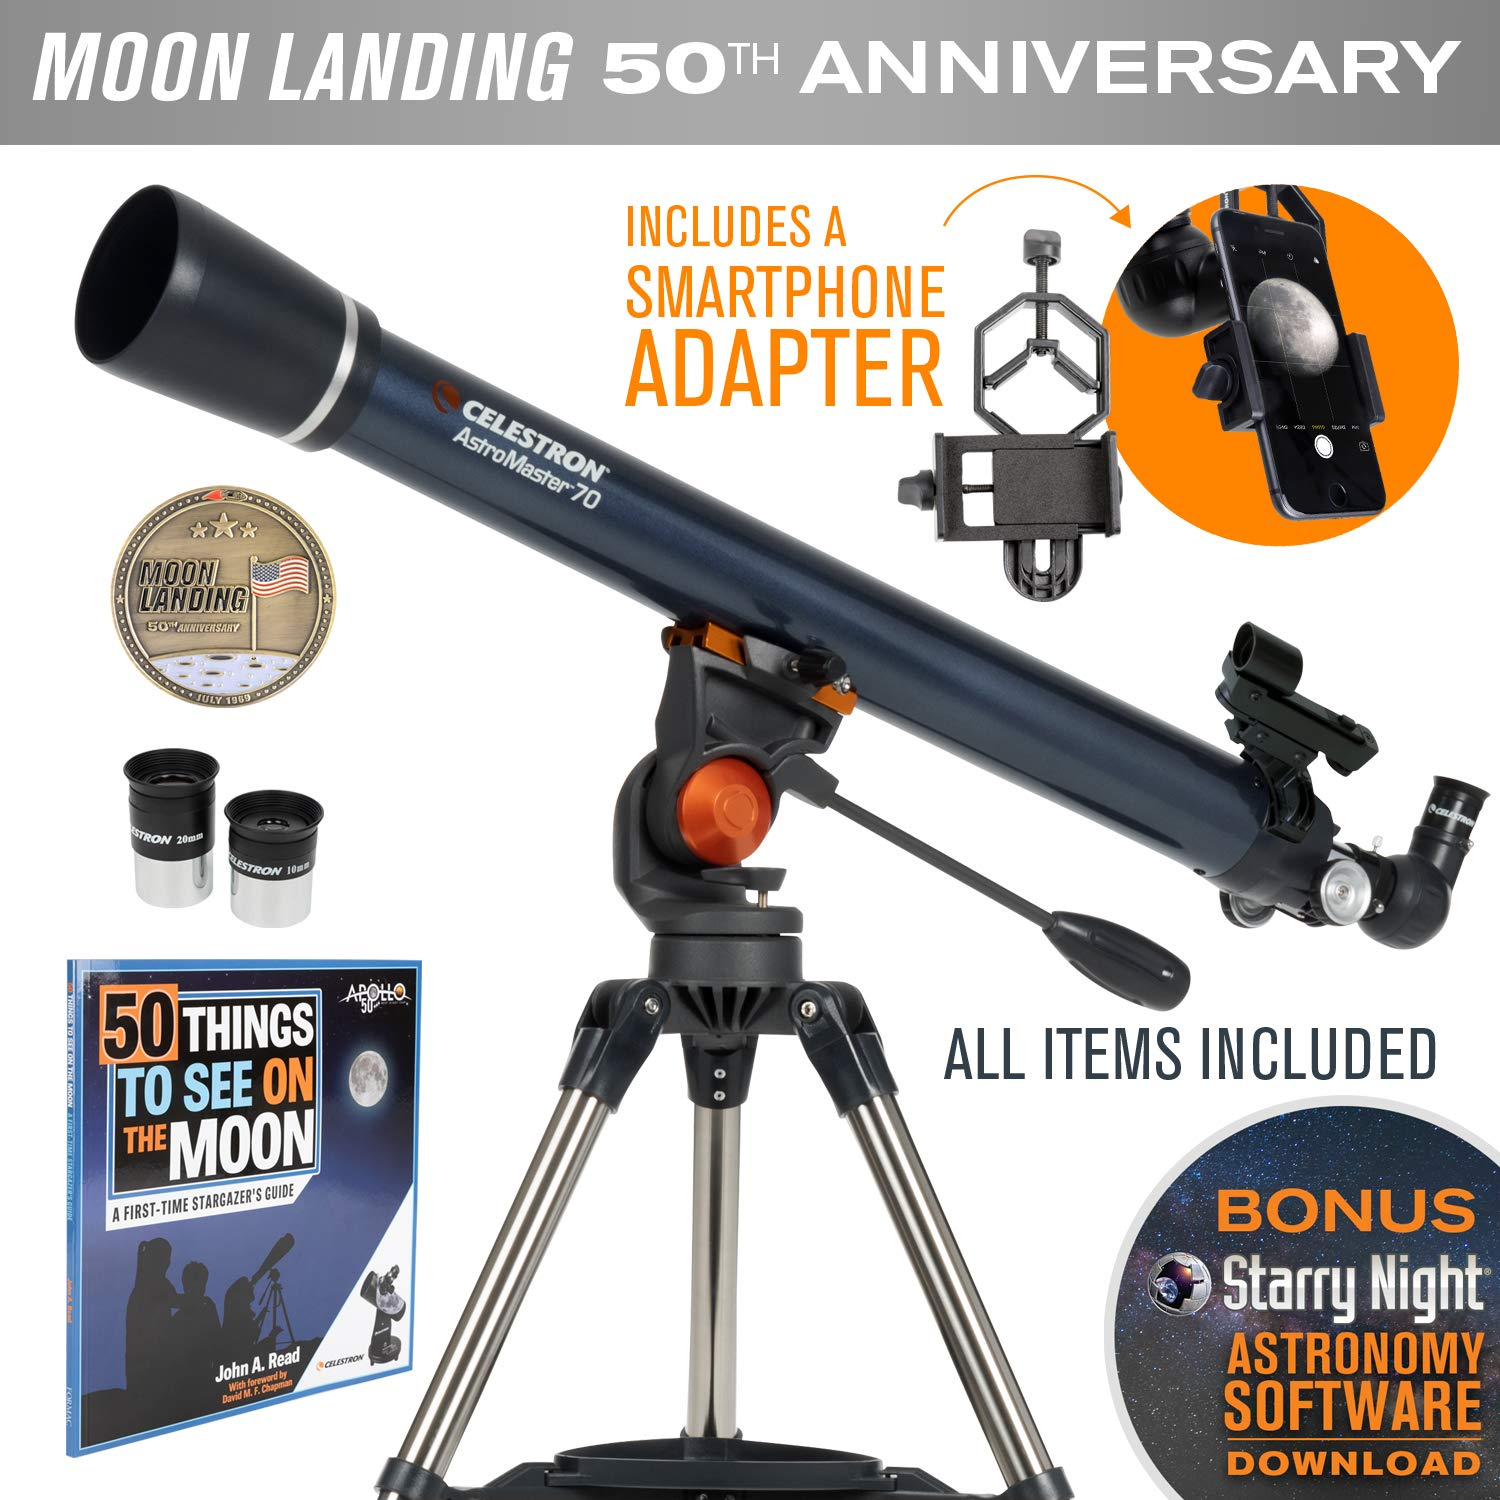 Celestron AstroMaster 70AZ Refractor Telescope with Smartphone Adapter - Limited Edition Apollo 11 50th Anniversary Bundle with Commemorative Coin and Book